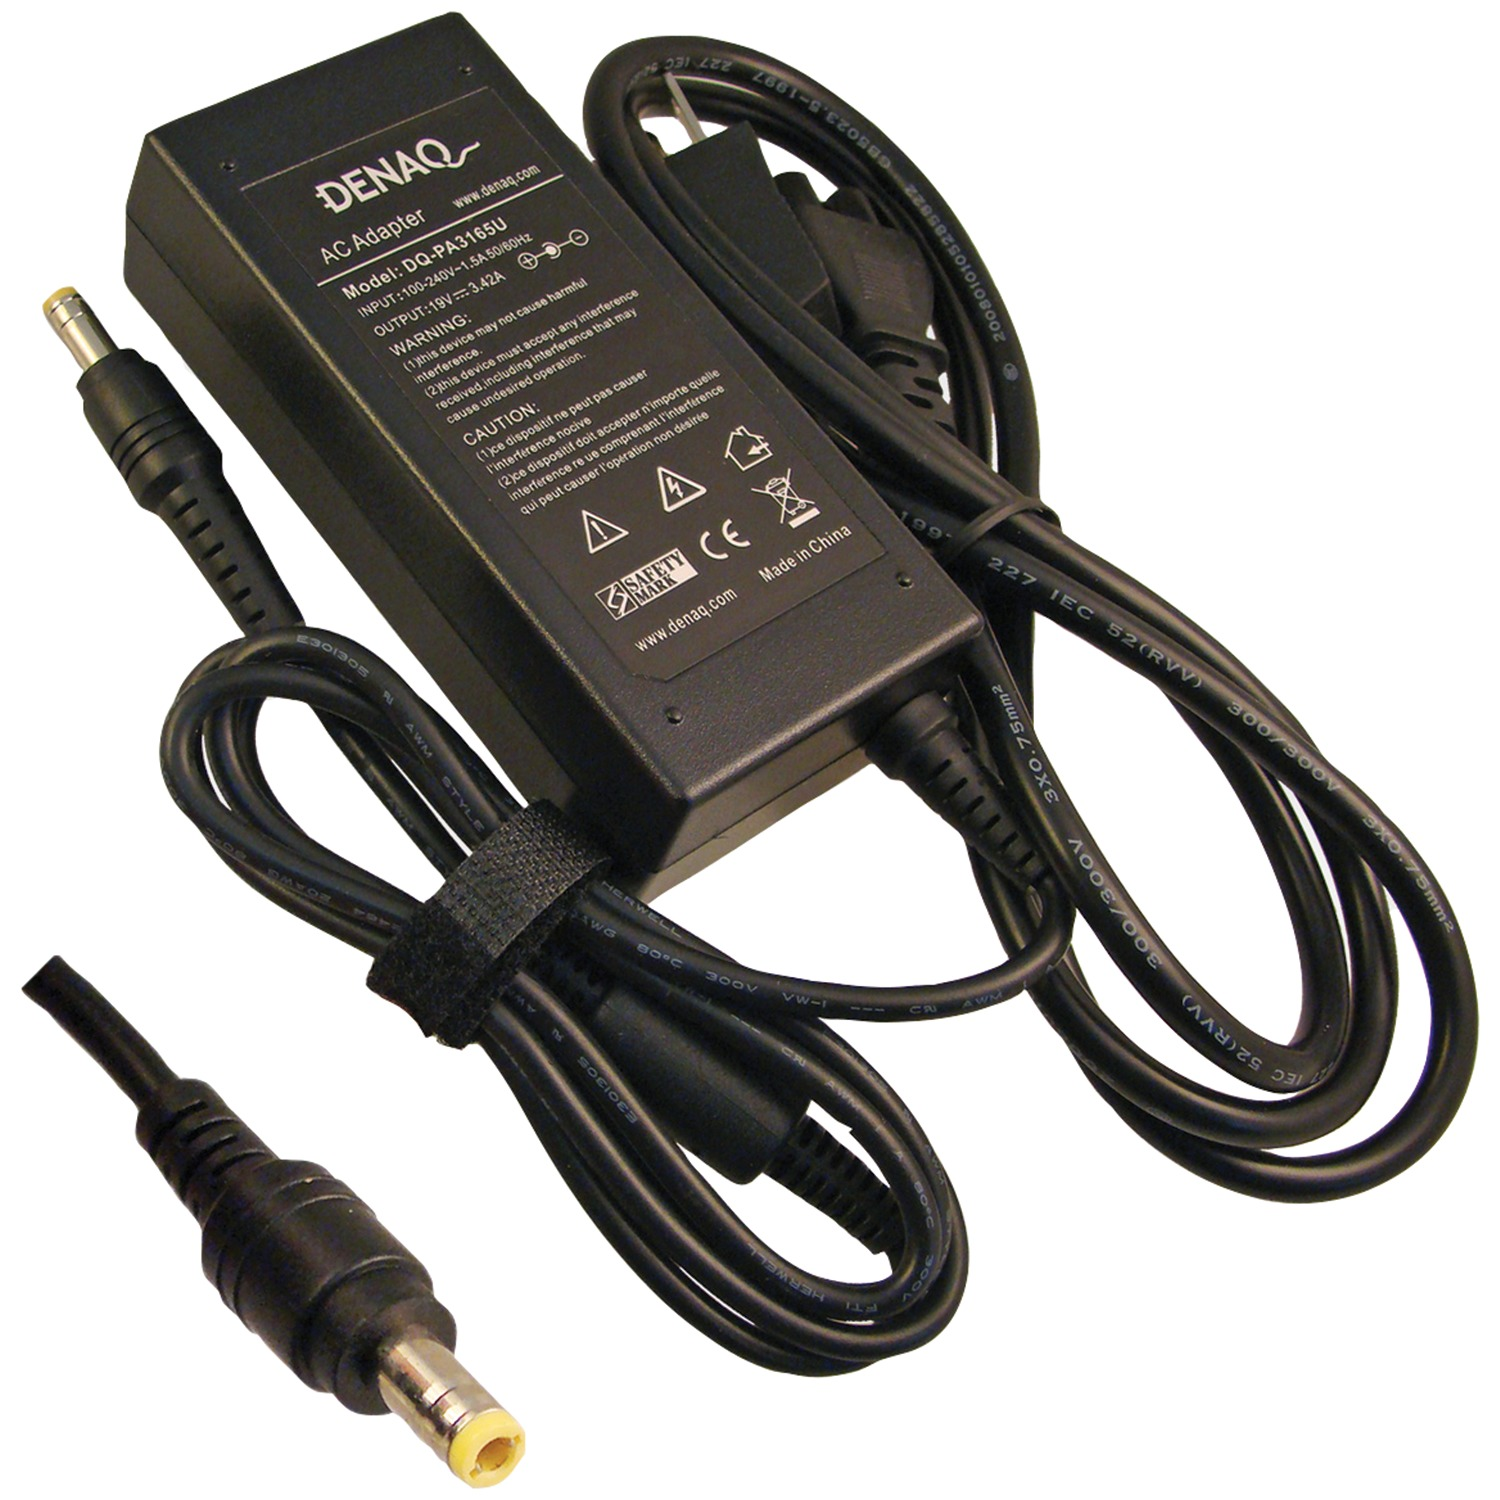 Denaq DQ-PA3165U-5525 19-Volt DQ-PA3165U-5525 Replacement AC Adapter for Toshiba Laptops